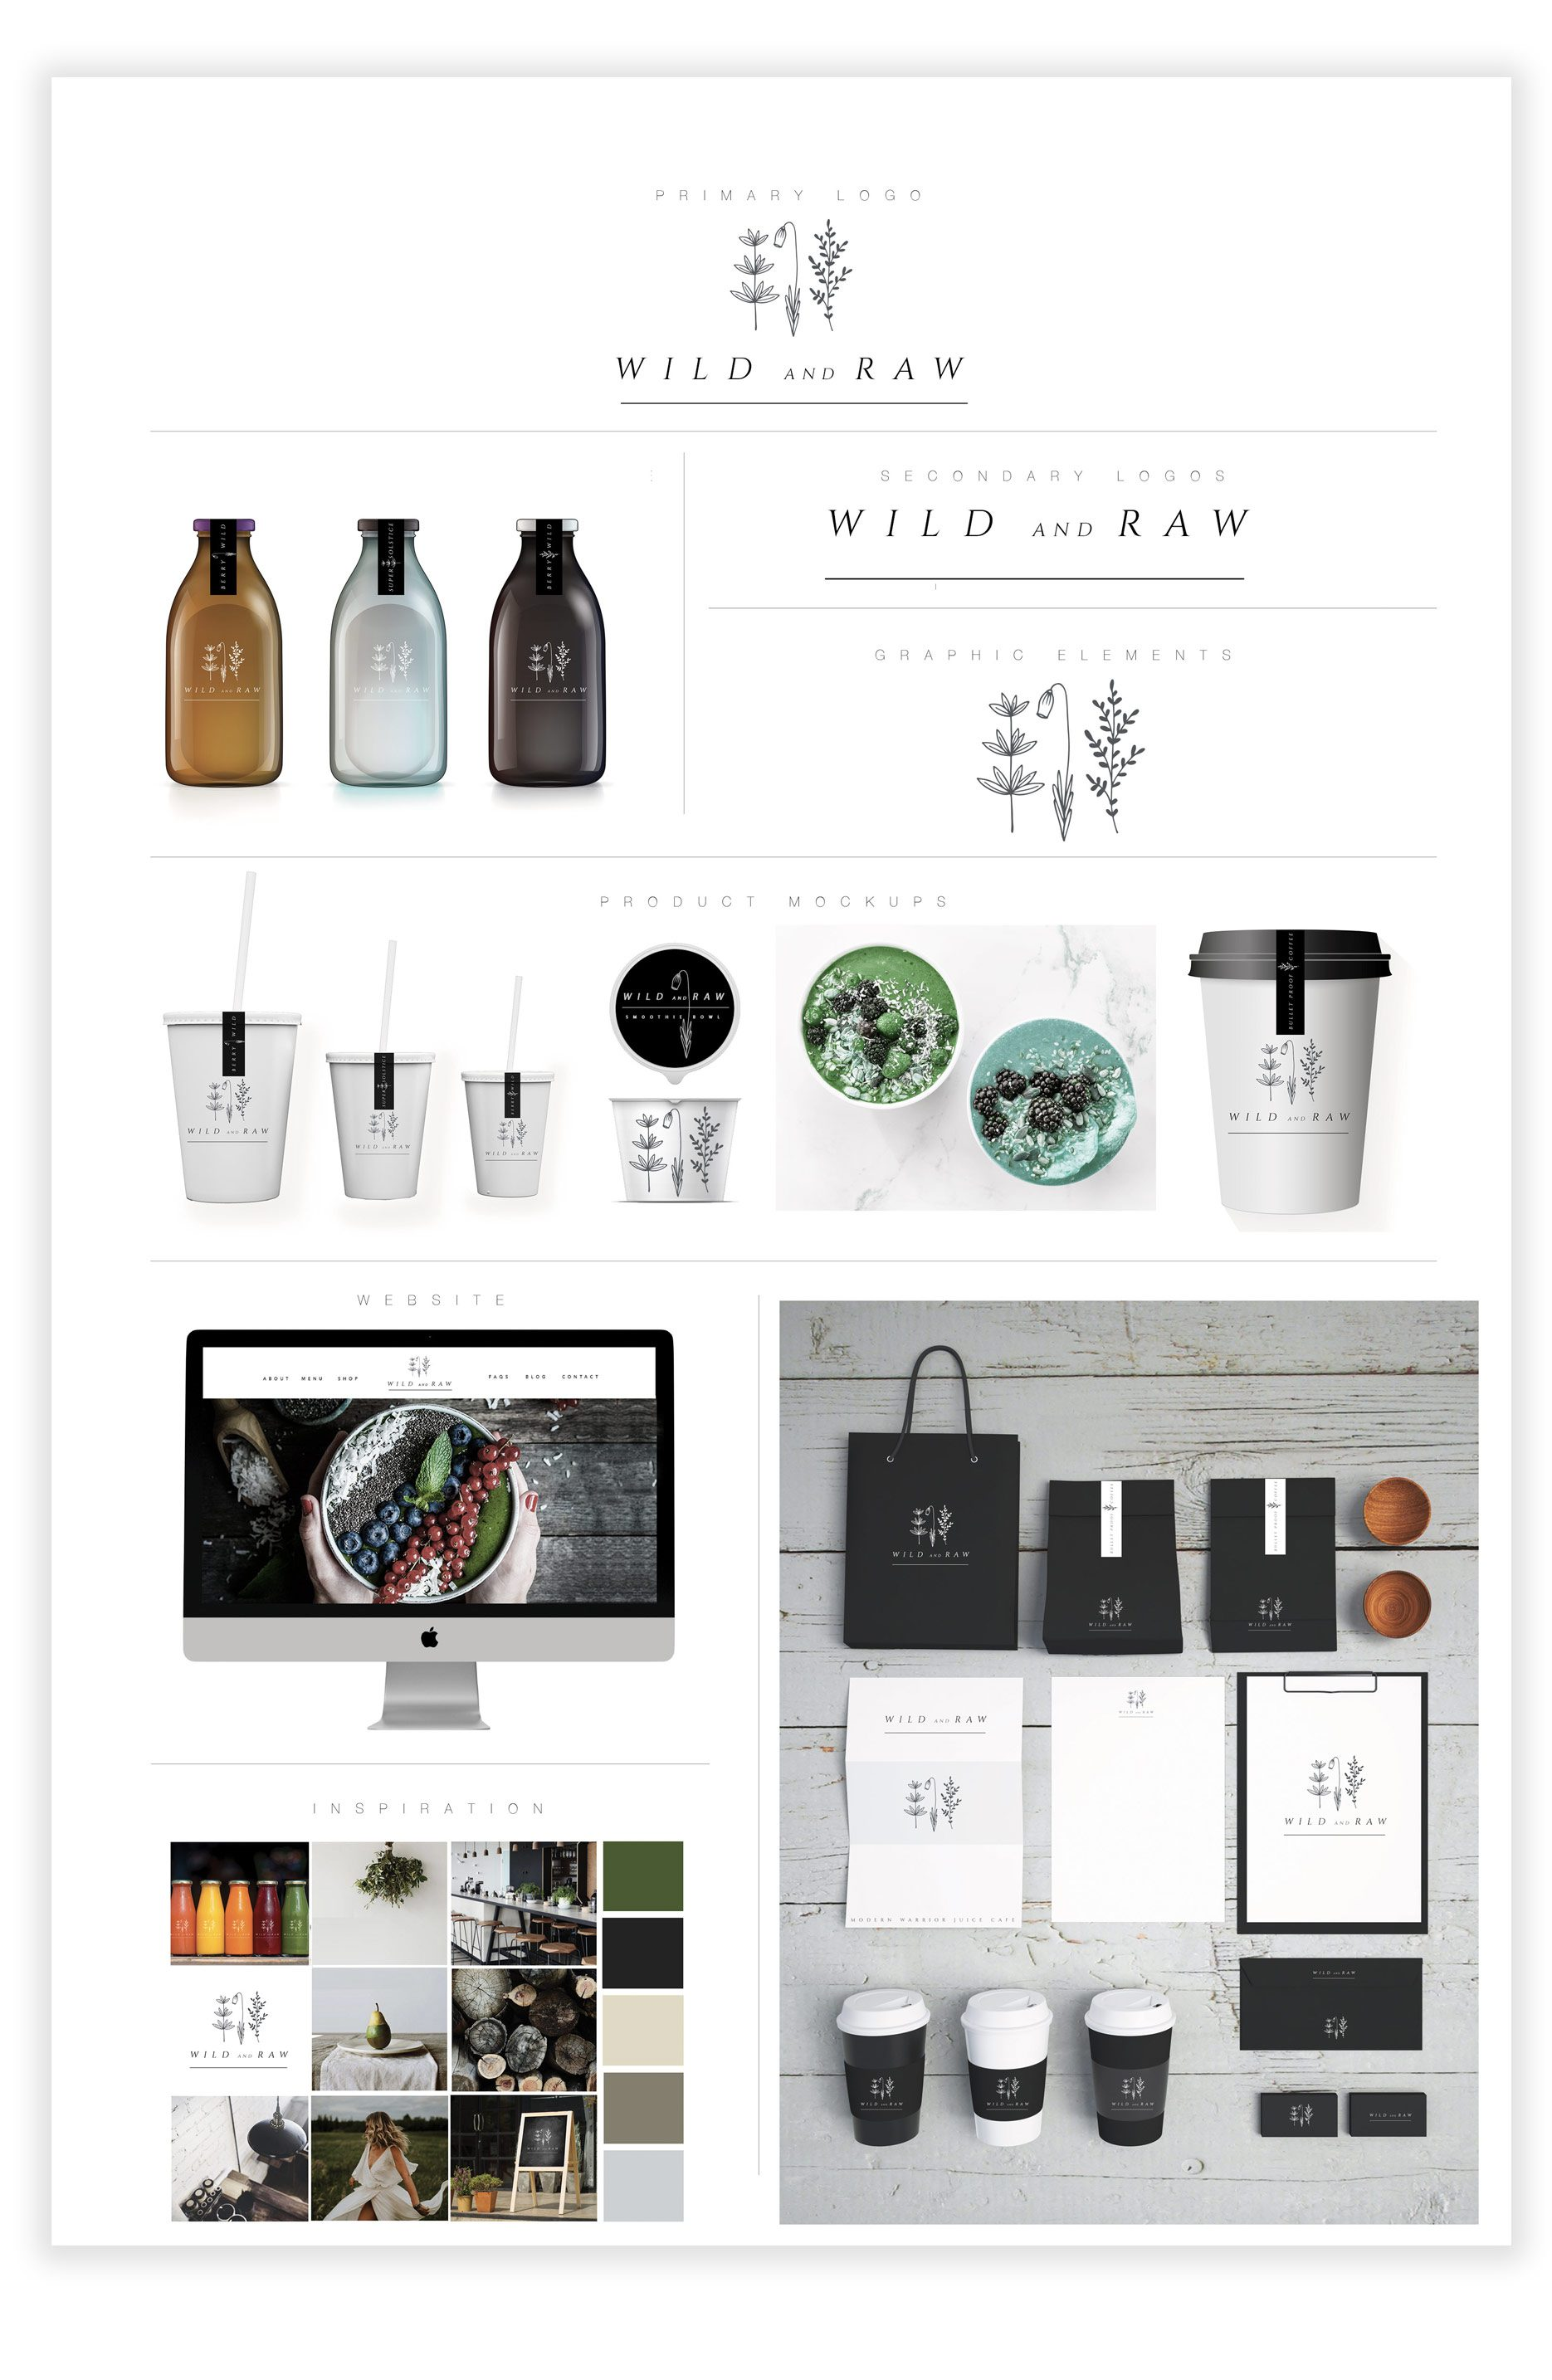 Oliver-Spence-Creative-Case-Study-Wild-Raw-Brand-Style-Guide